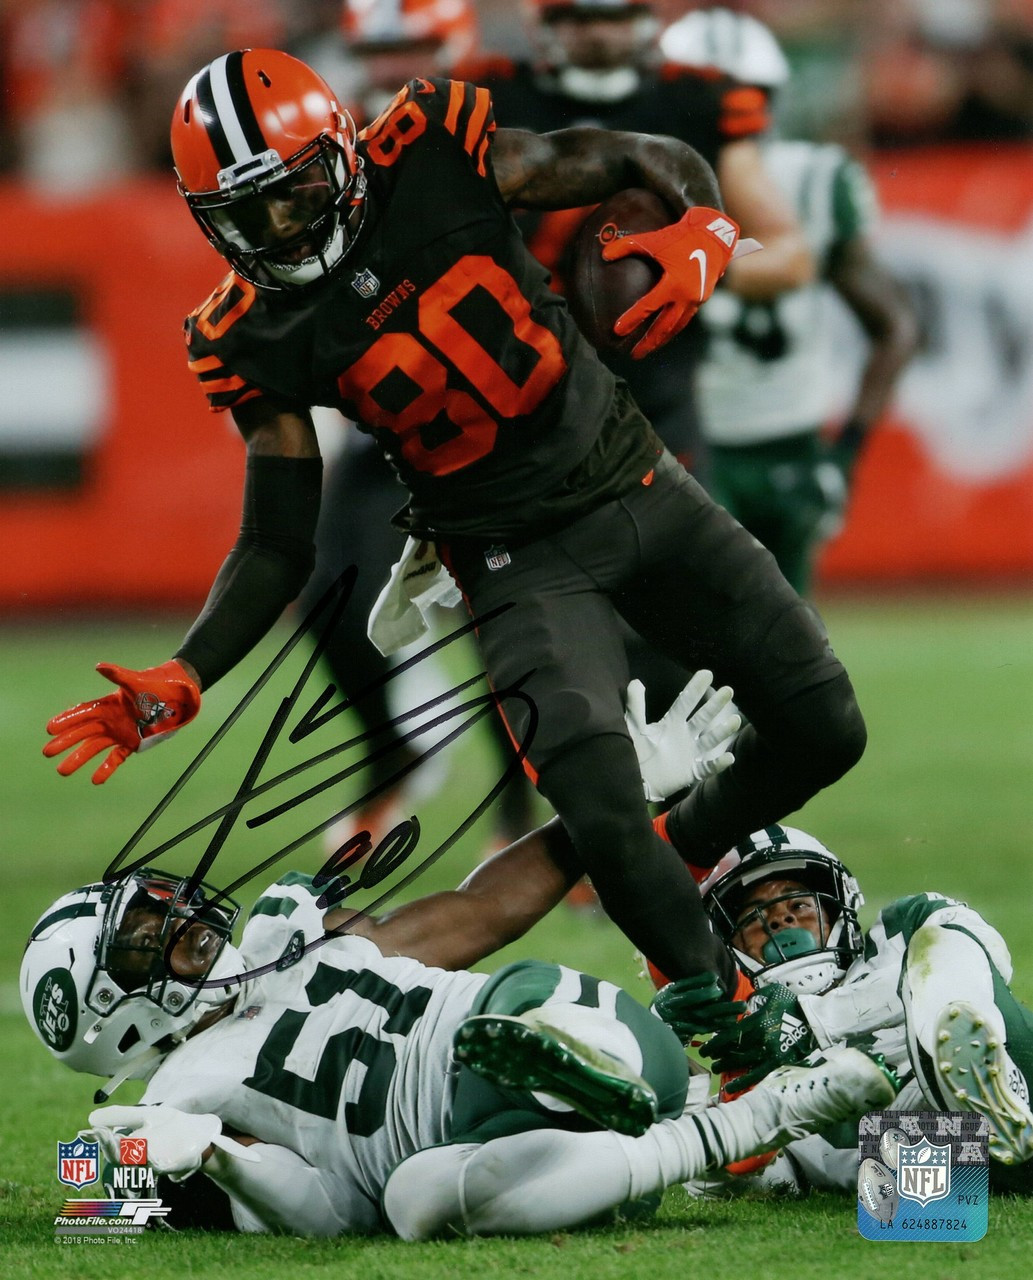 ae36a738 Jarvis Landry Cleveland Browns 8-1 8x10 Autographed Photo - Certified  Authentic